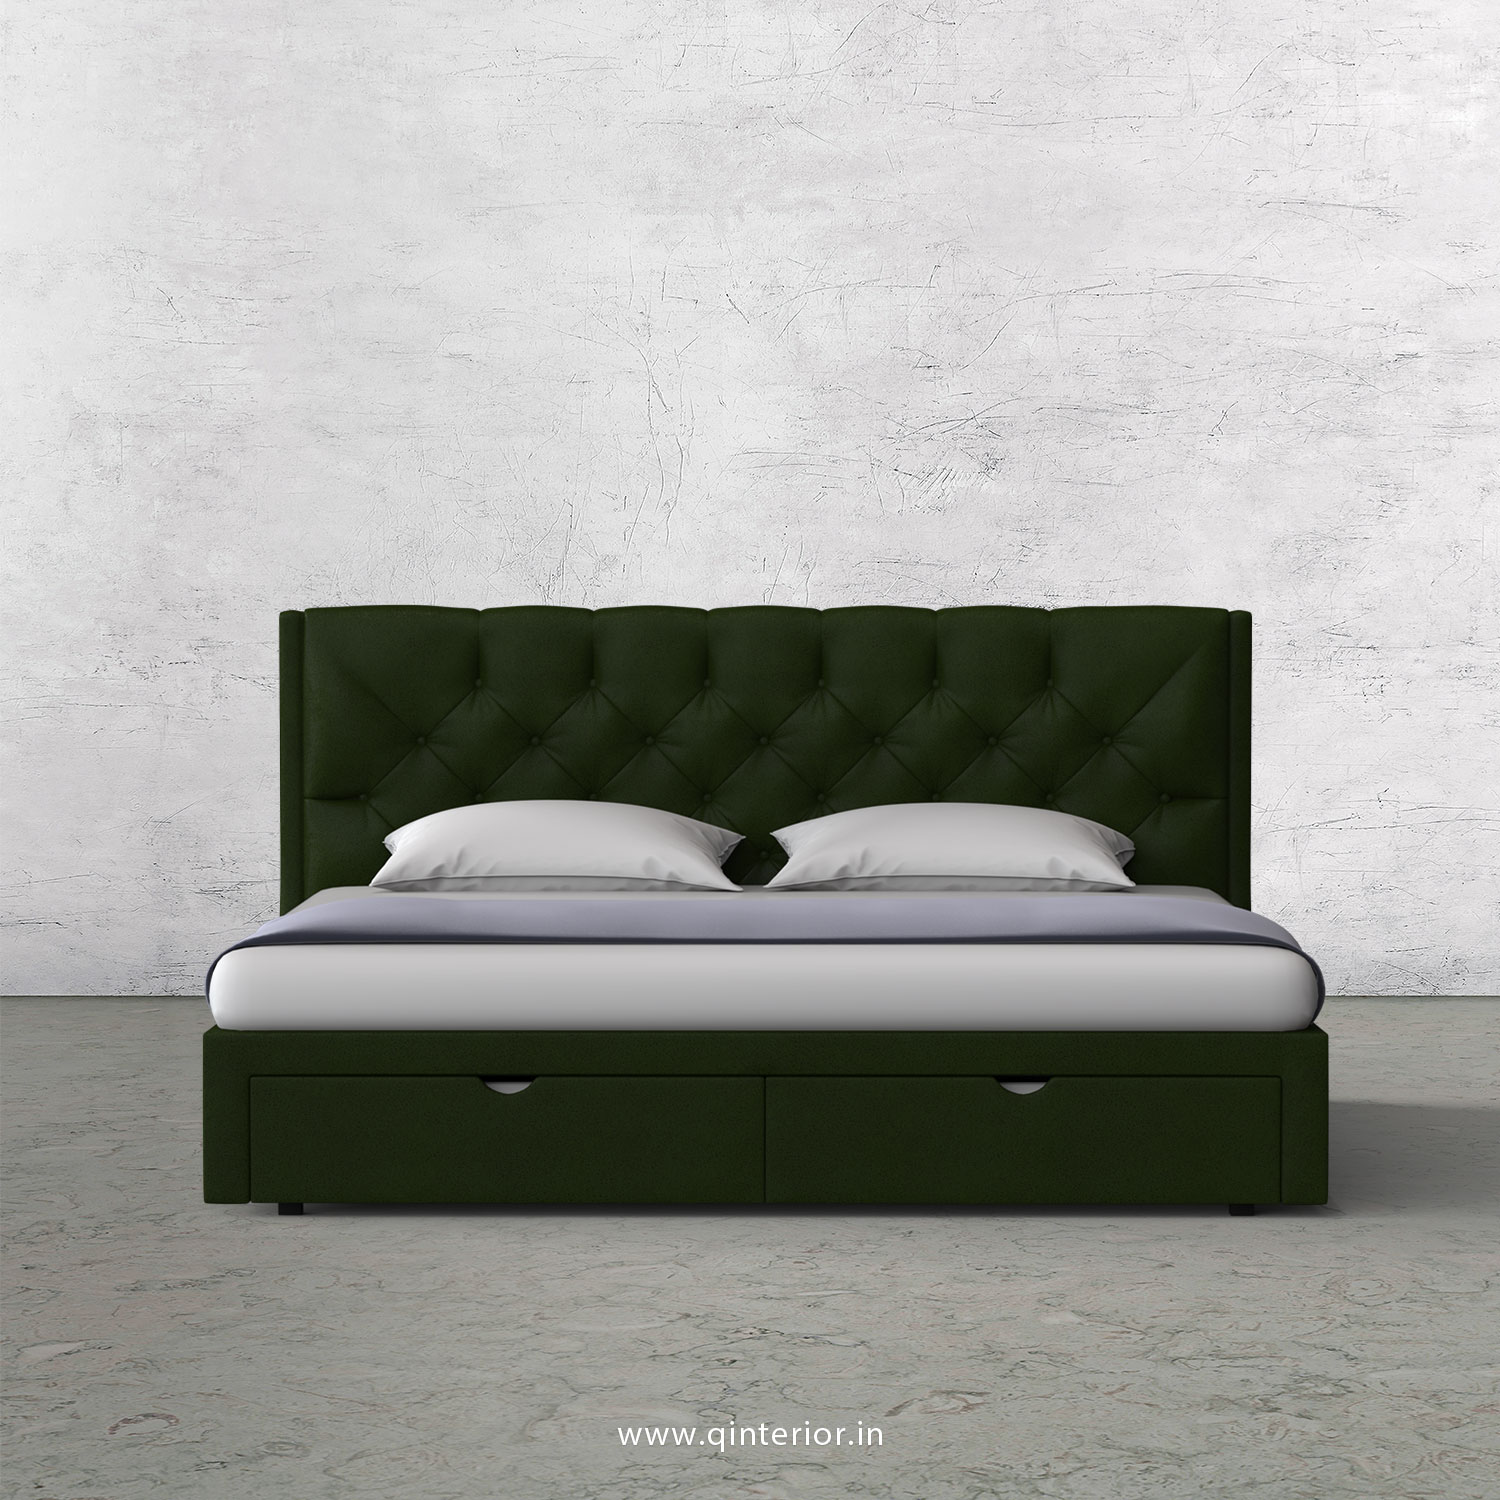 Scorpius King Size Storage Bed in Fab Leather Fabric - KBD001 FL04